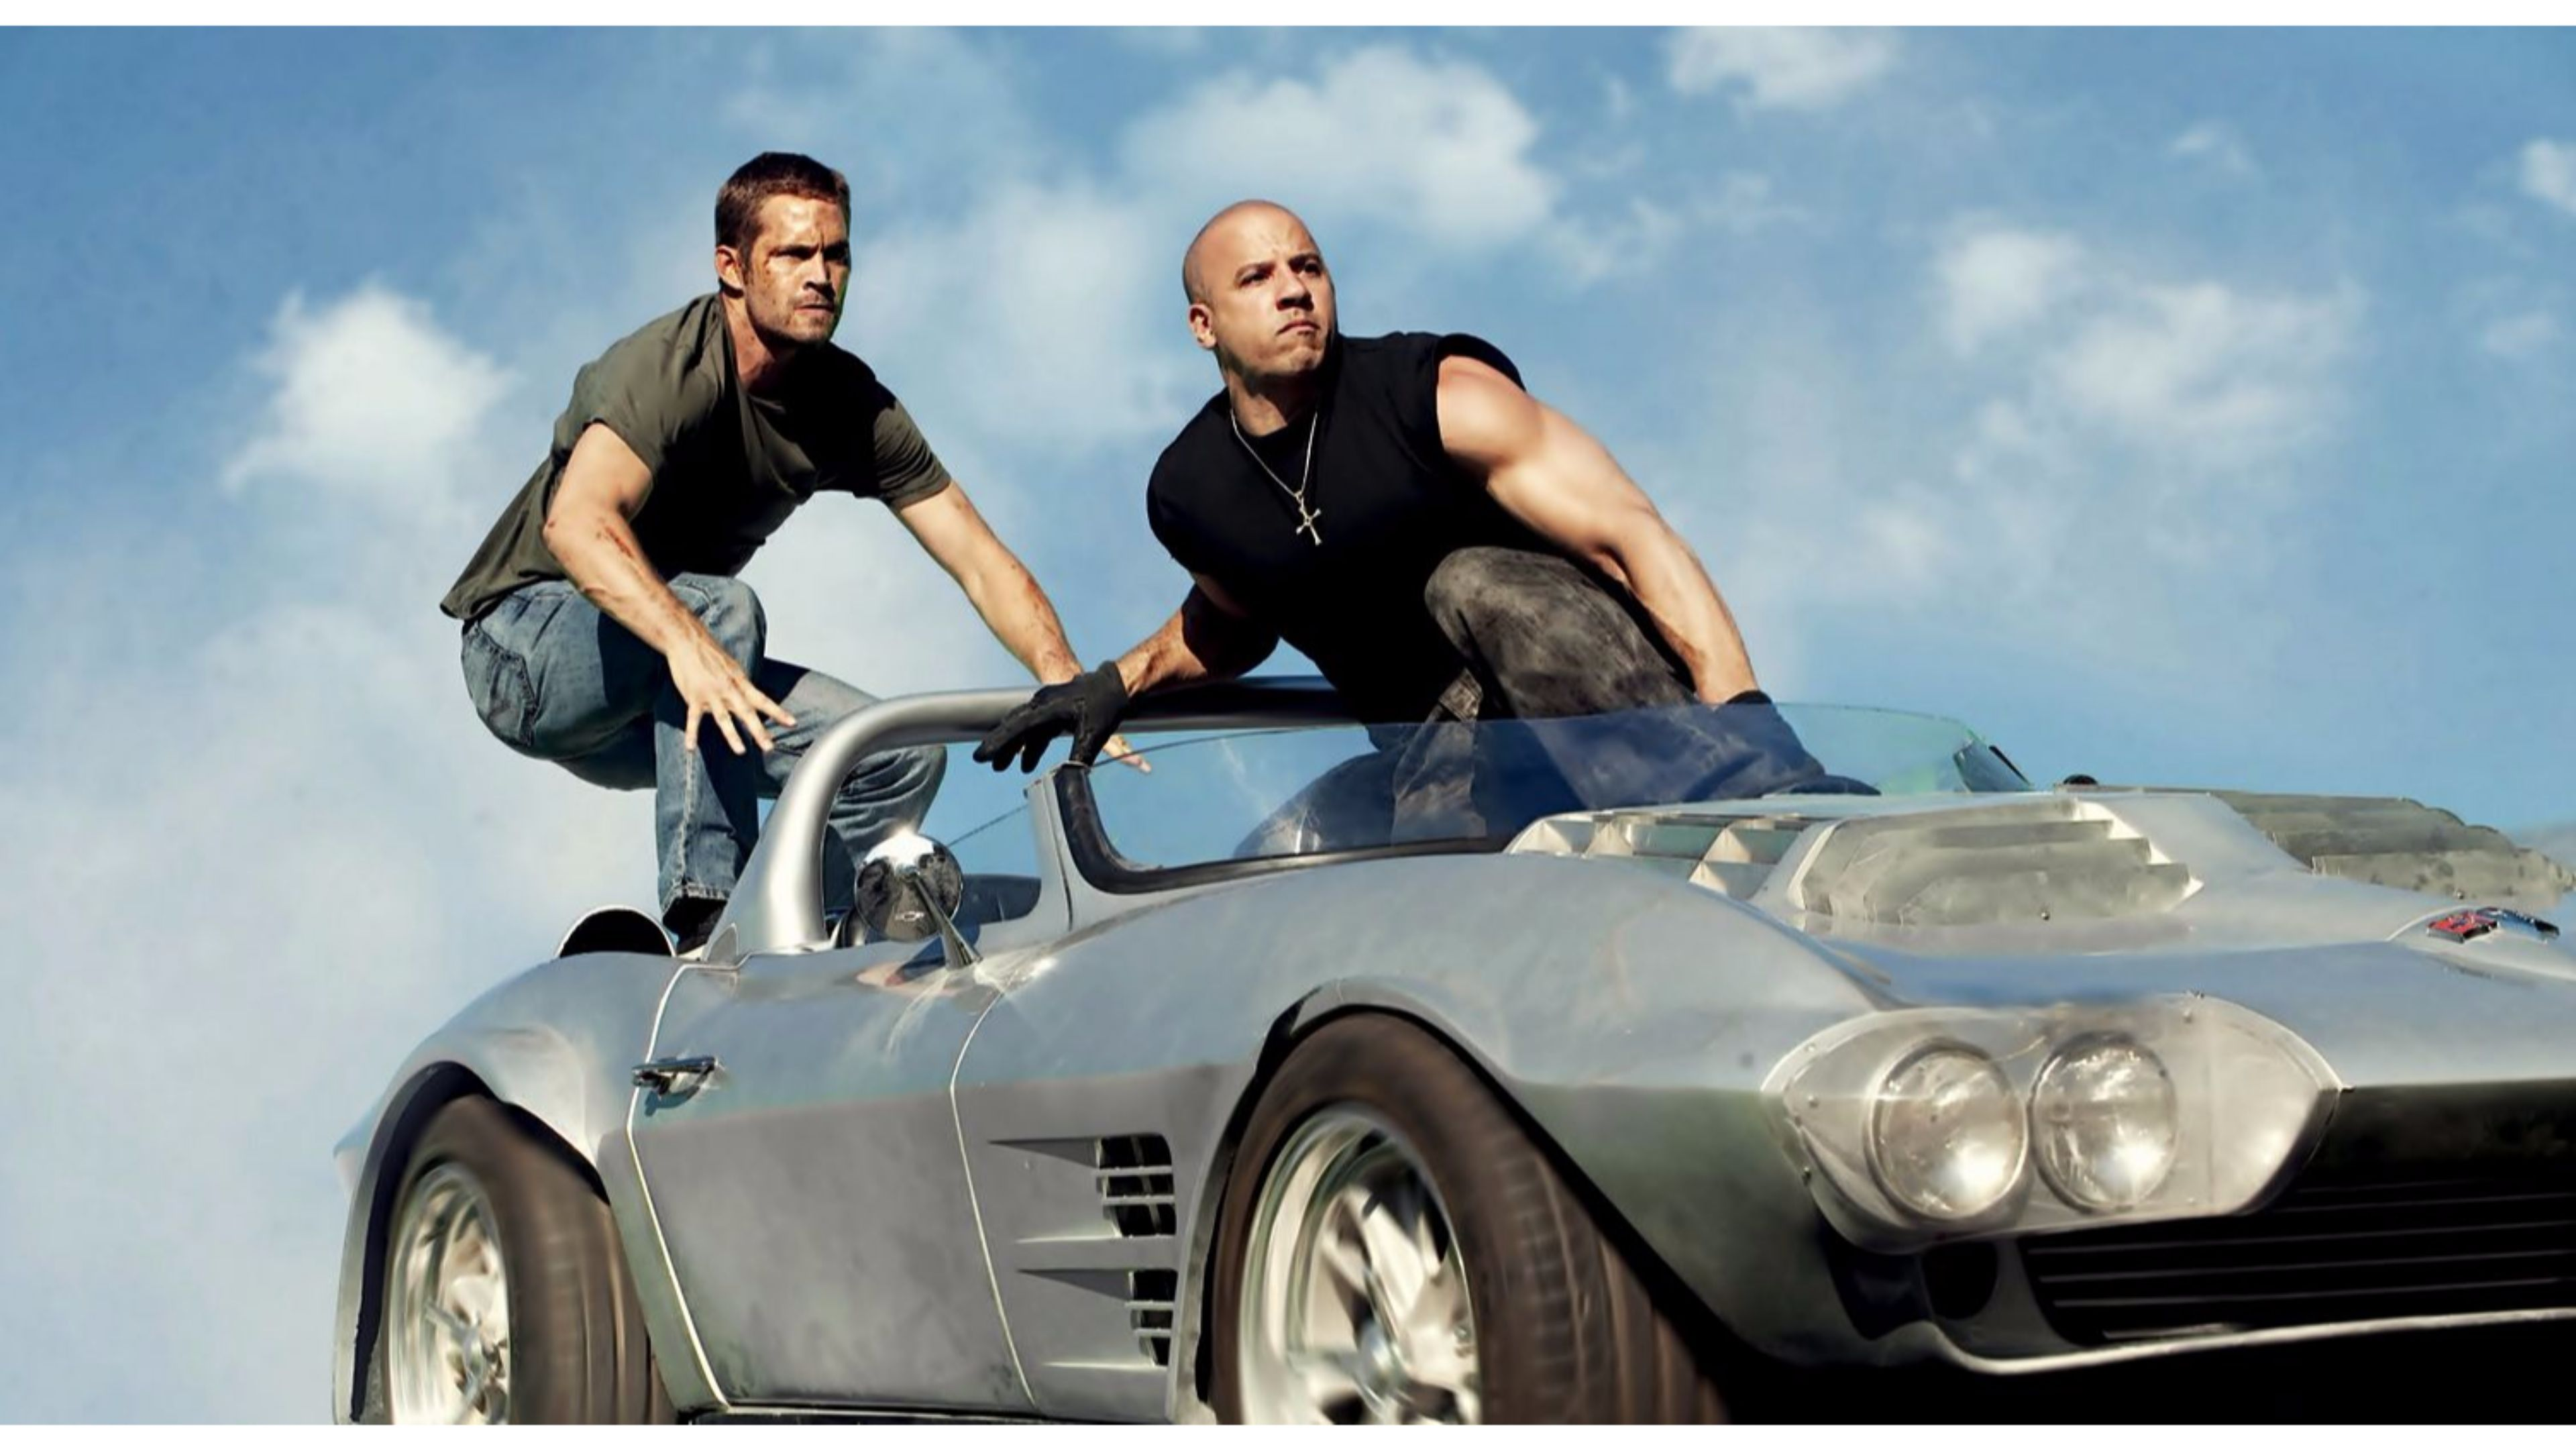 Download Free Furious 7 wallpaper